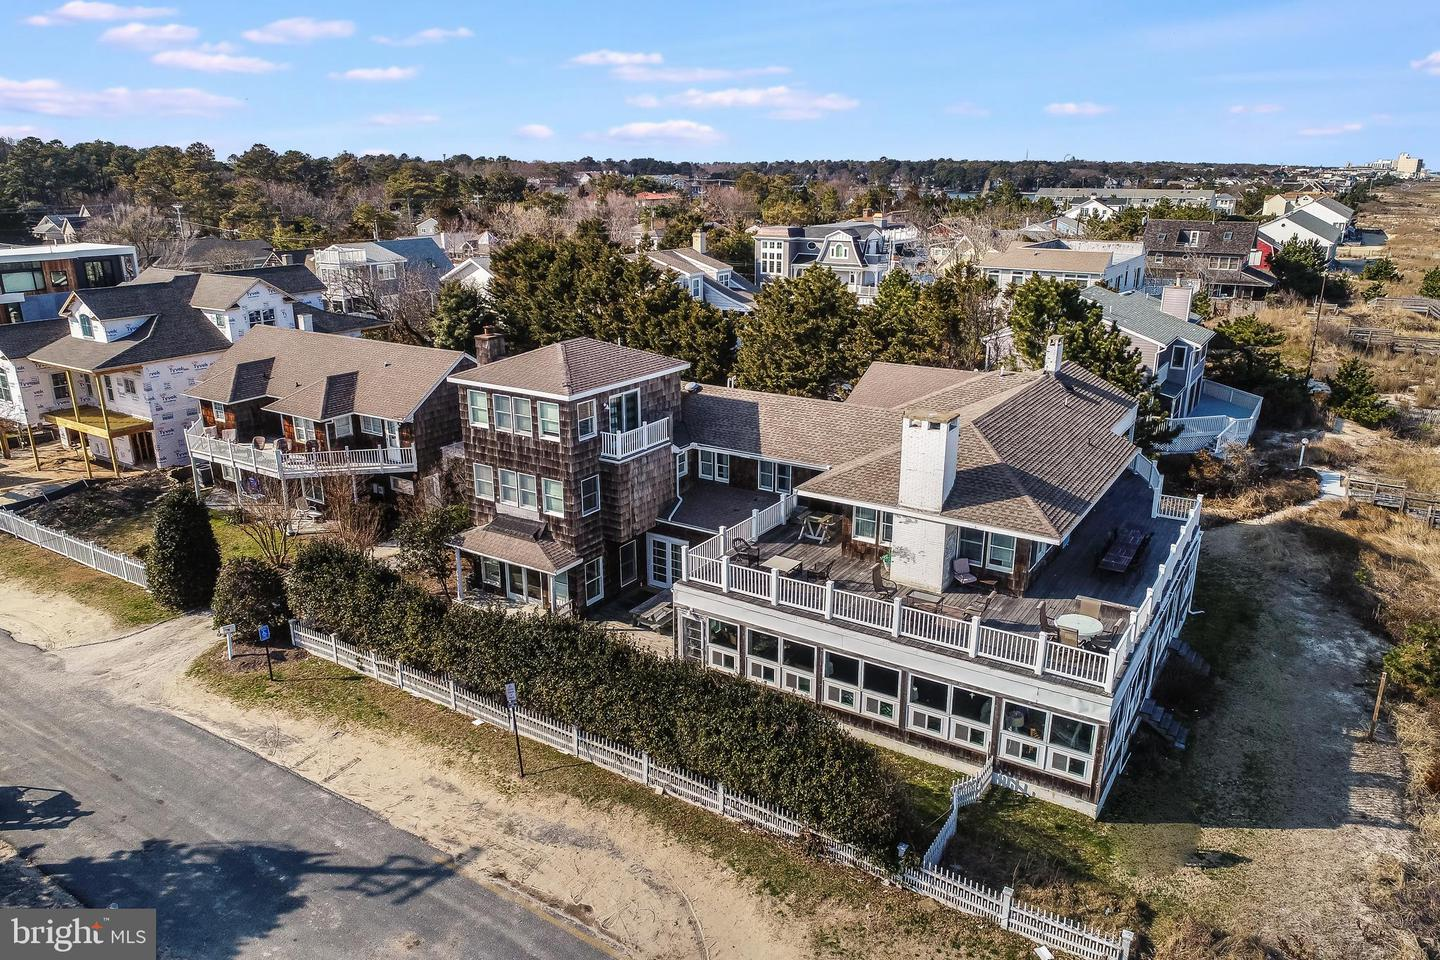 DESU134836-301584194514-2020-10-01-21-03-00 1 & 3 Cullen St | Dewey Beach, DE Real Estate For Sale | MLS# Desu134836  - Ocean Atlantic